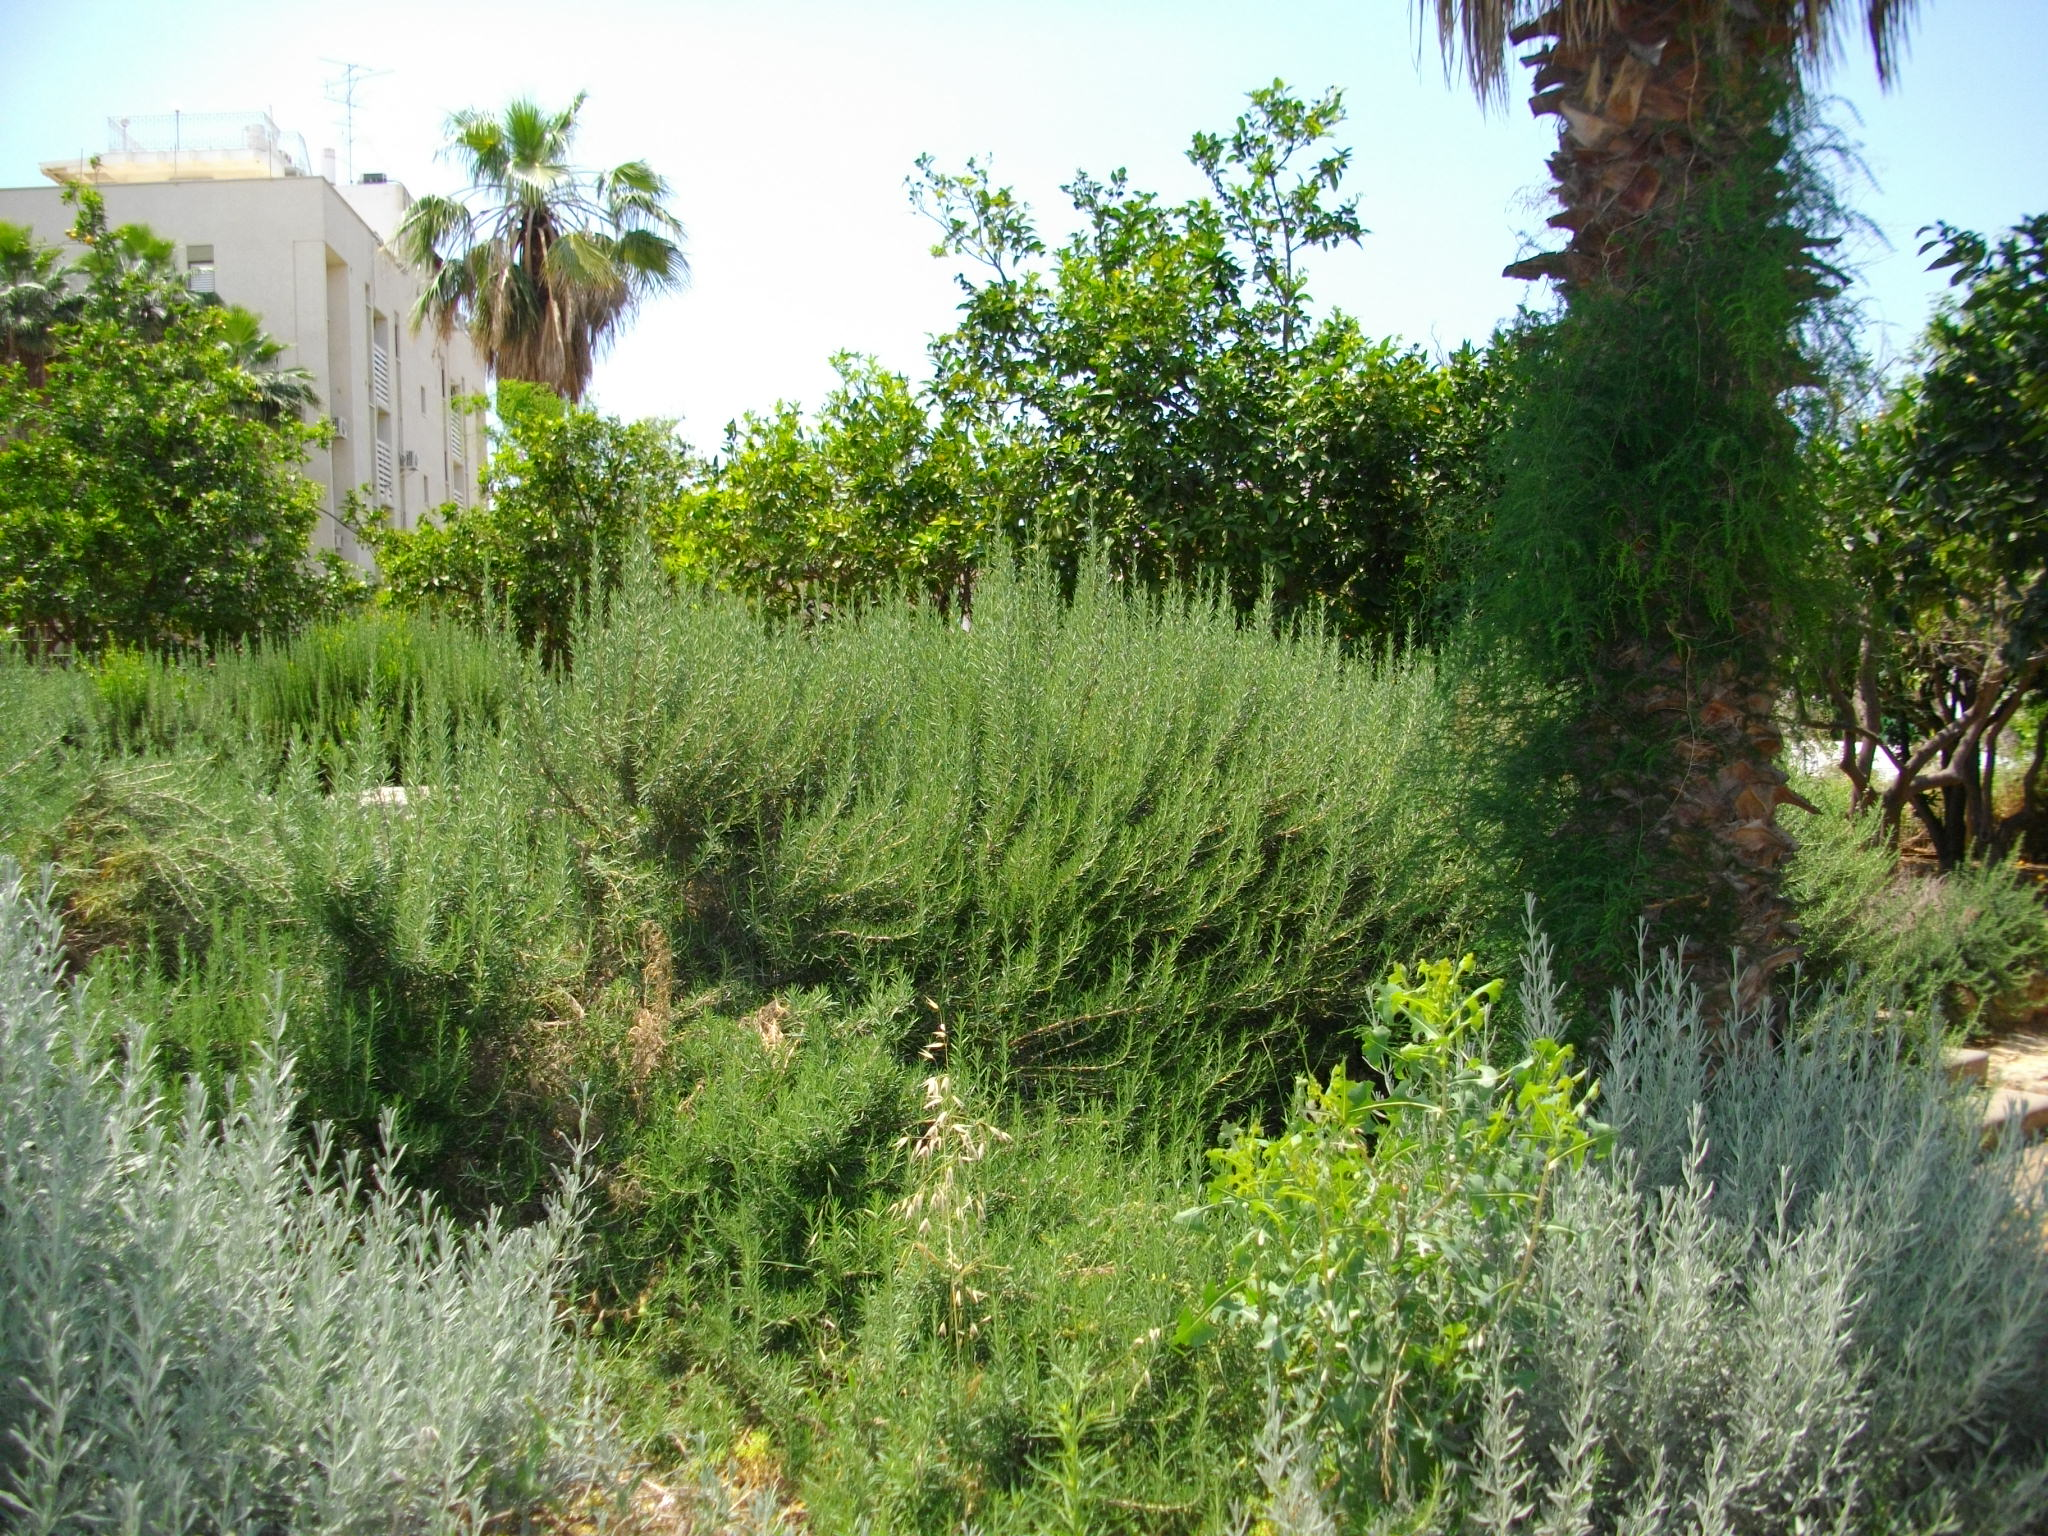 Rosemary Bush in Landscape Rosemary And Lavender Bushes